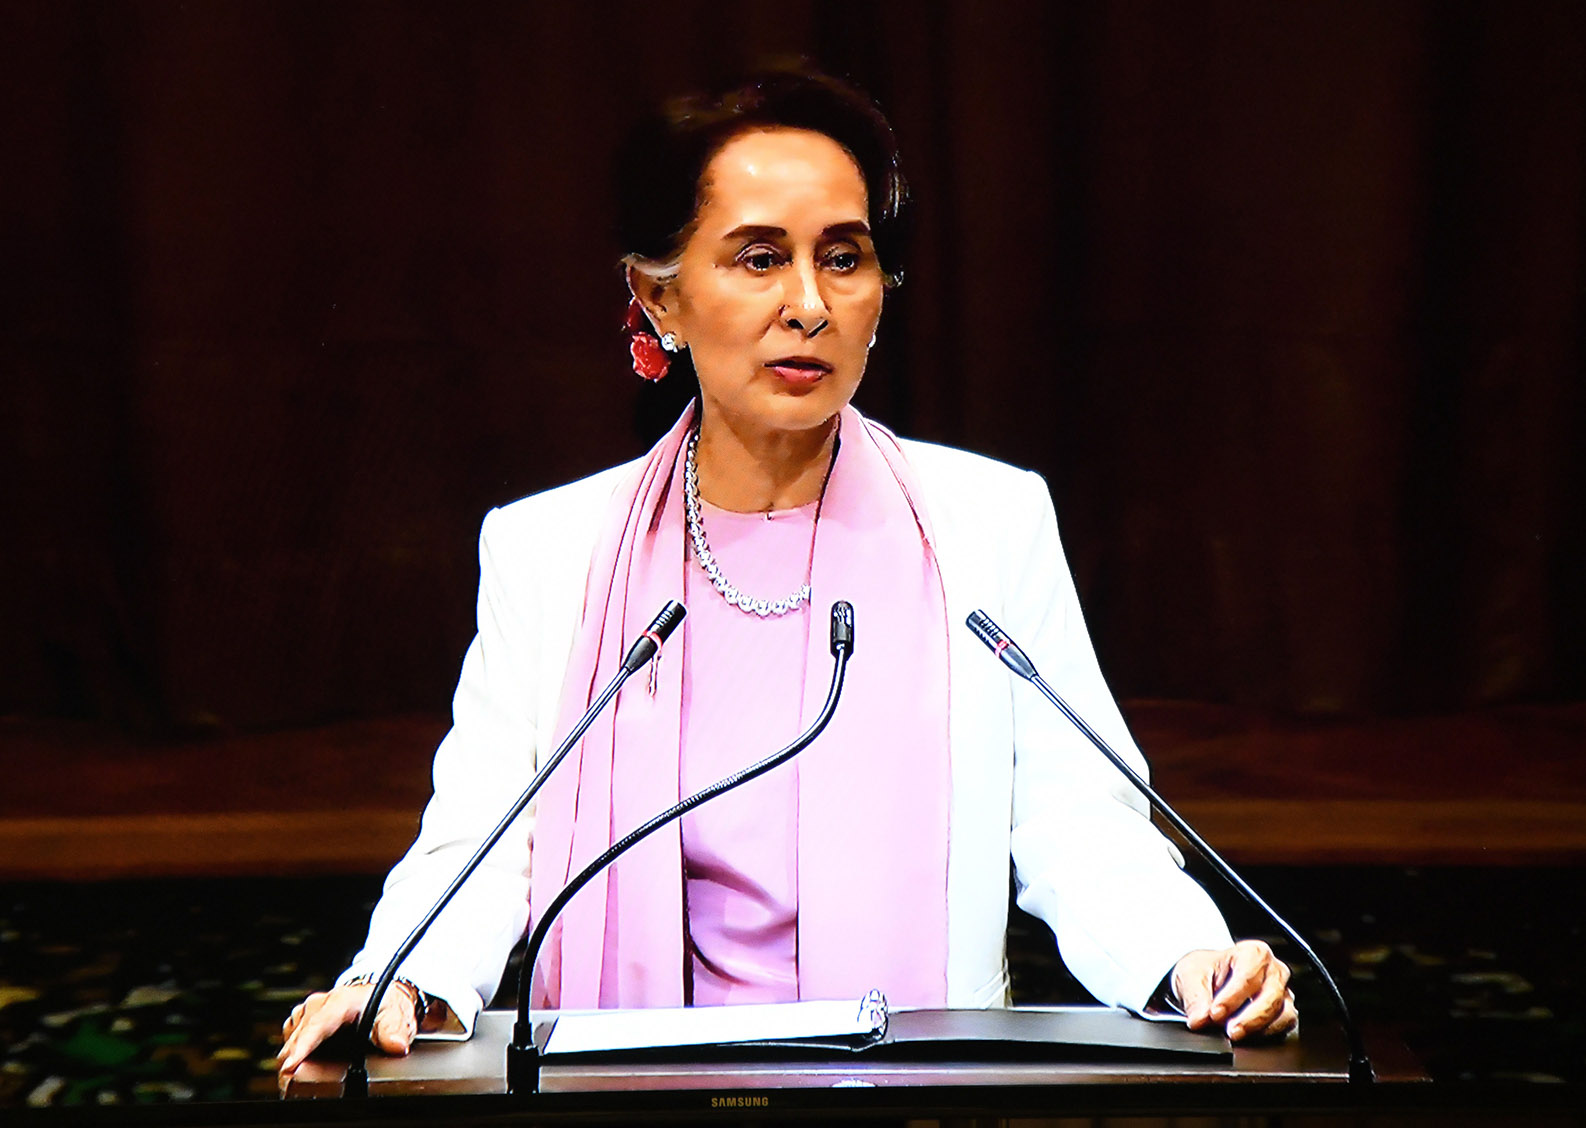 State Counsellor Daw Aung San Suu Kyi delivers the statement at the International Court of Justice (ICJ) at The Hague, the Netherlands. Photo: MNA